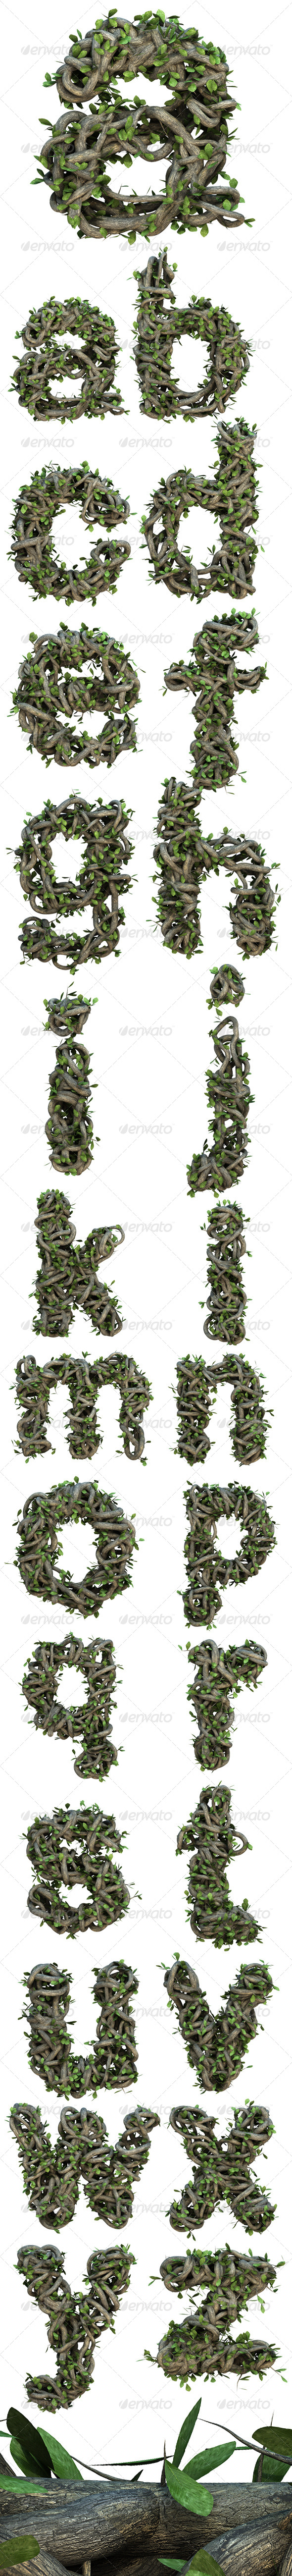 Ivy Lowercase Alphabet - Text 3D Renders